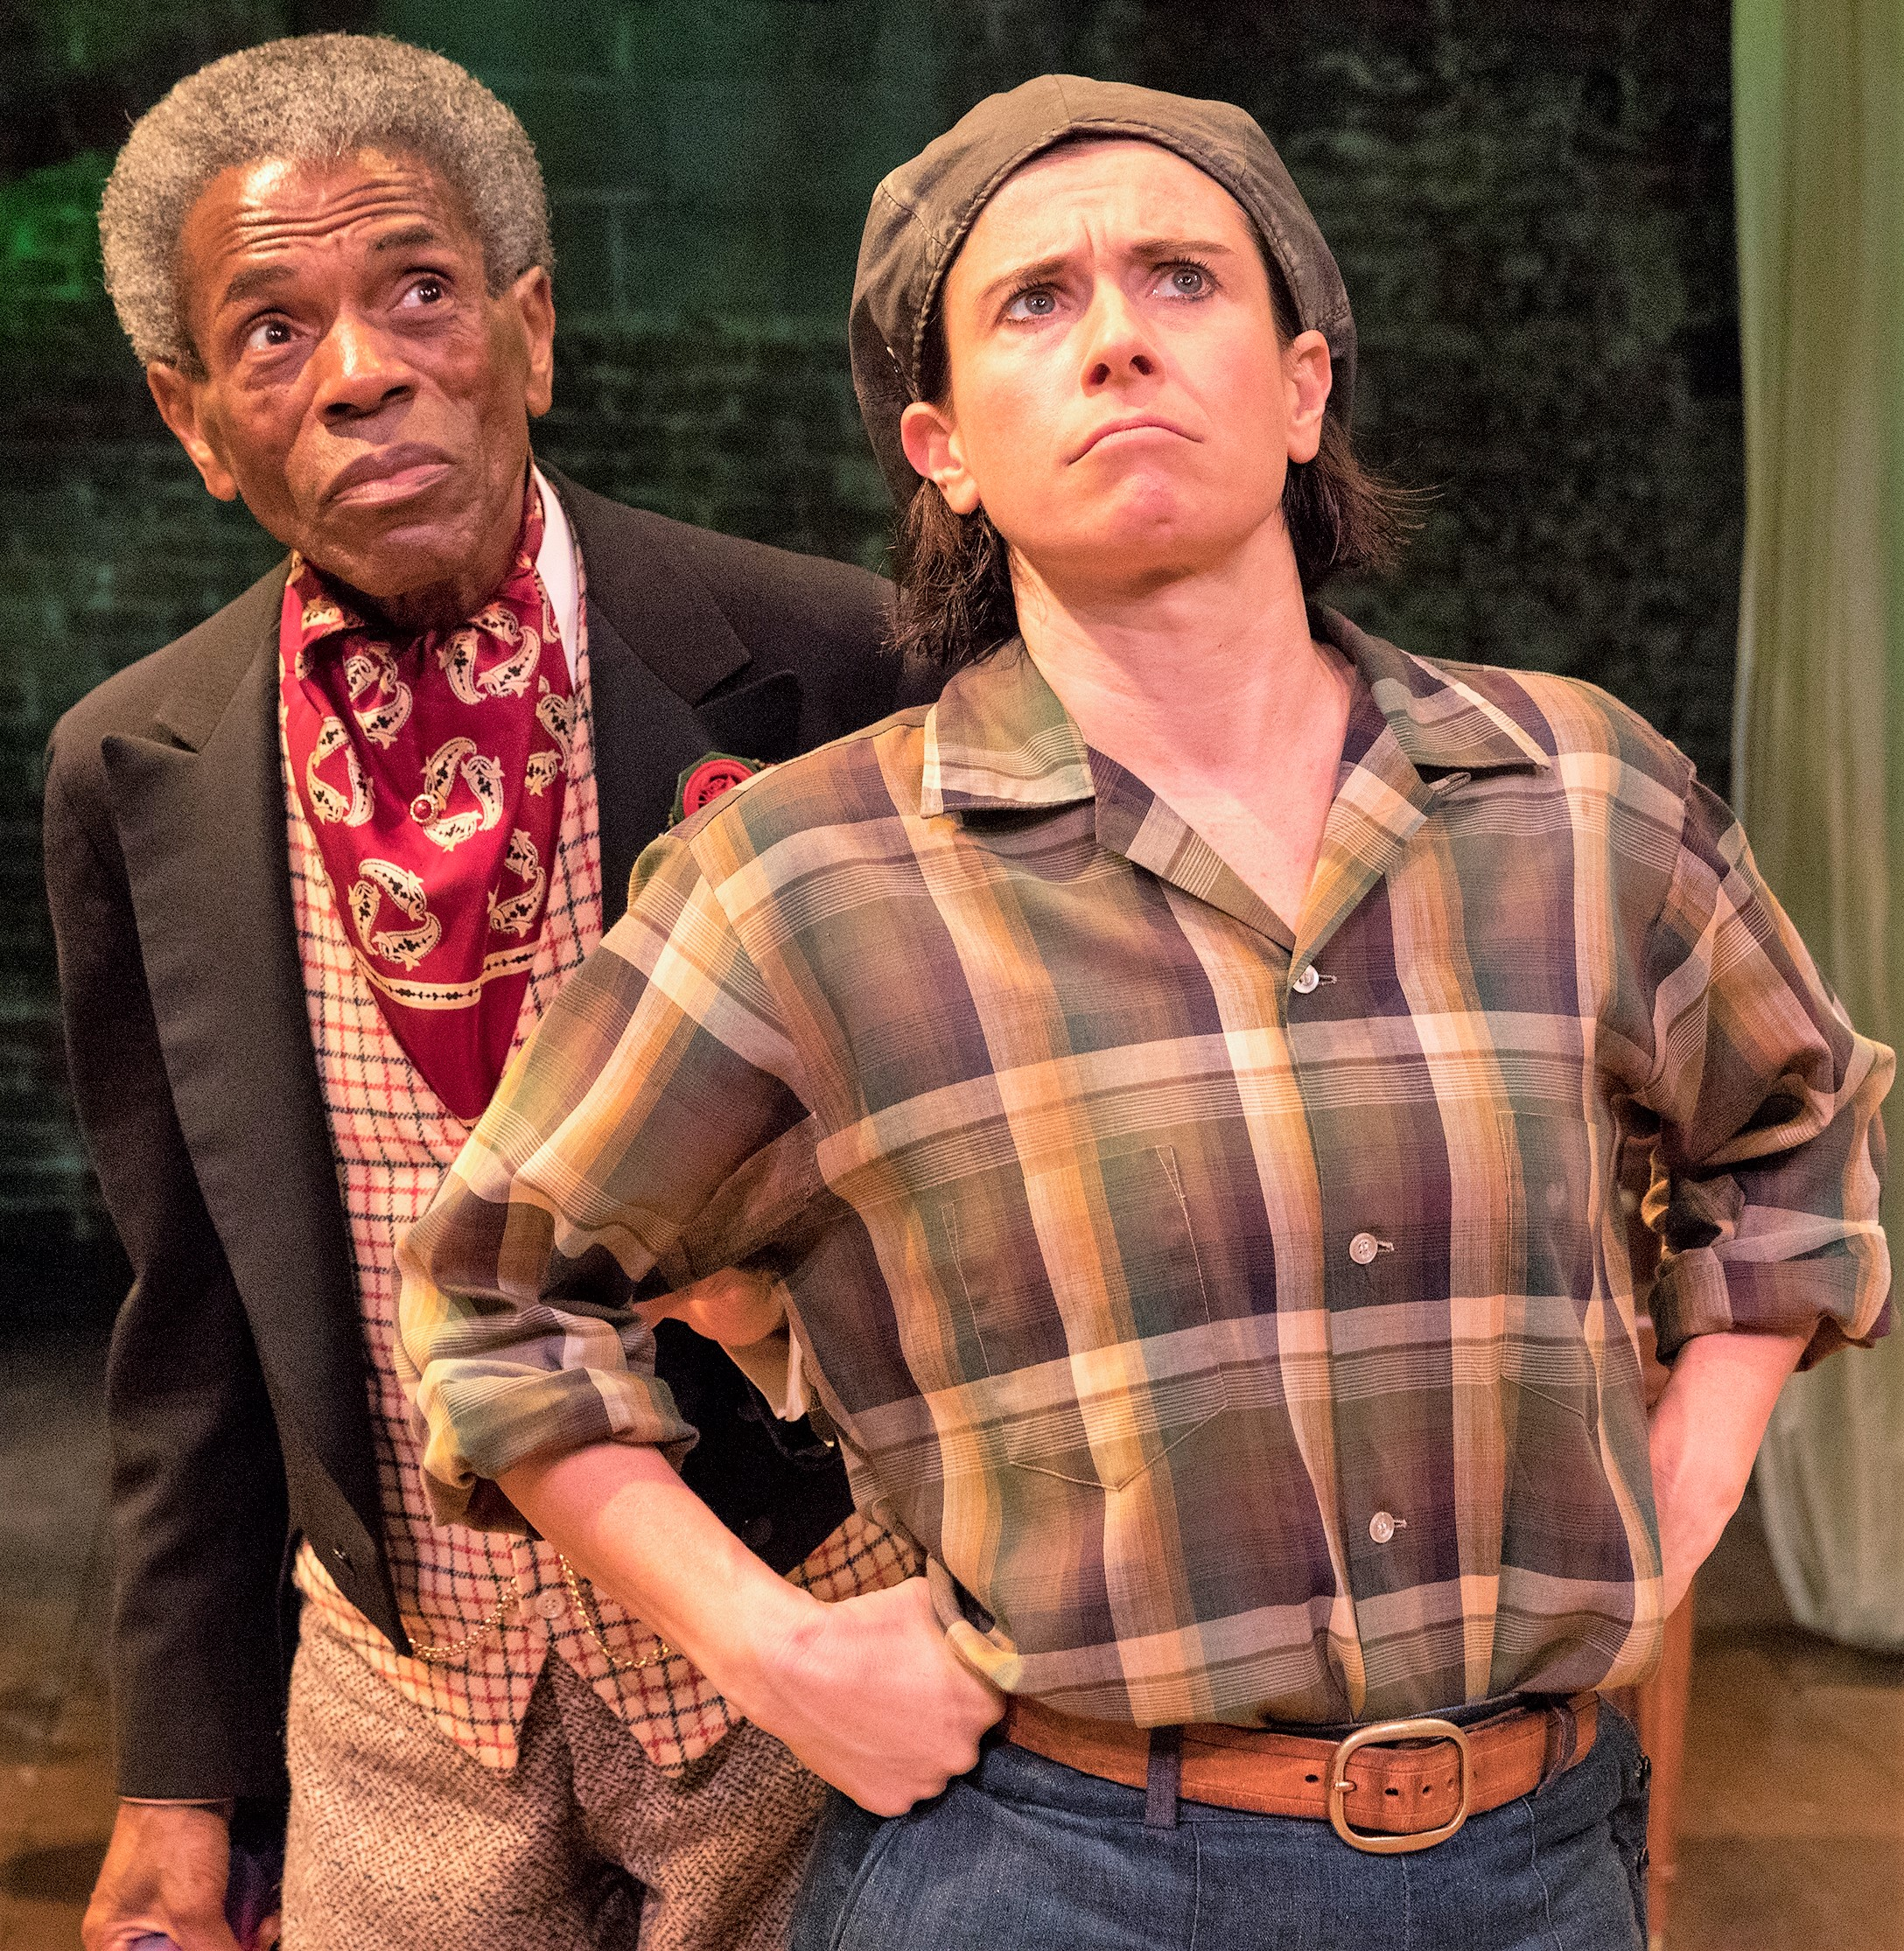 André De Shields as Touchstone with Cabell. Photographs by Richard Termine.